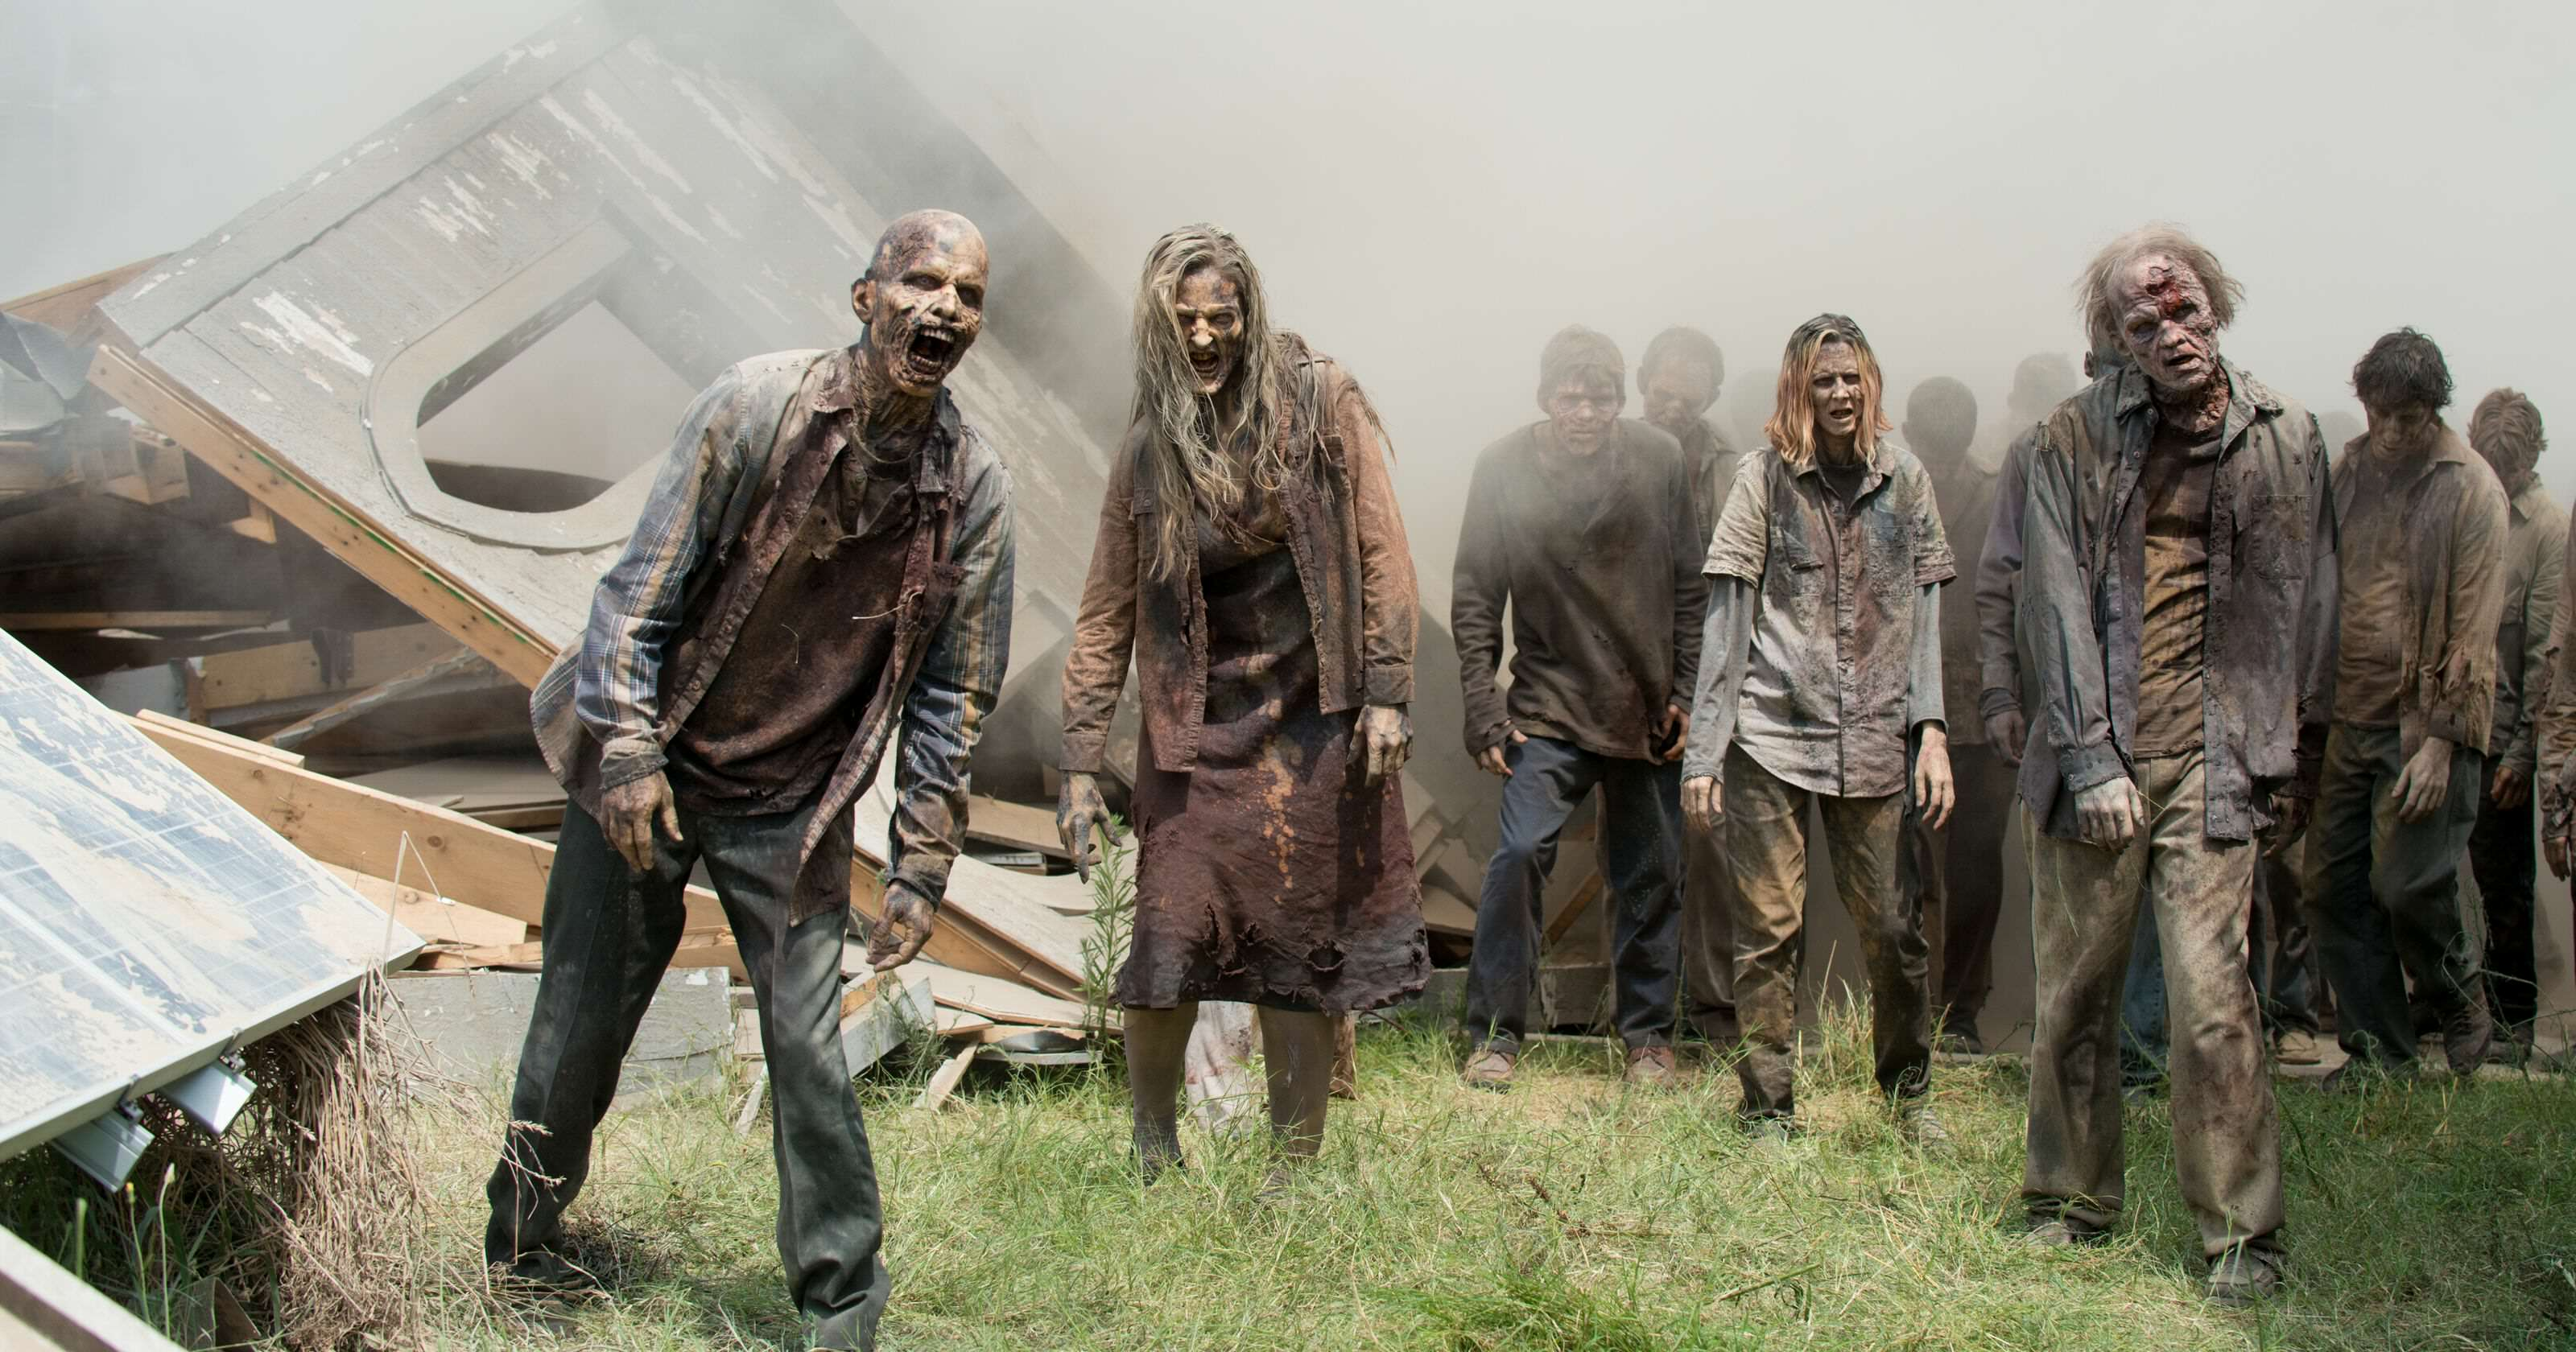 635991641108039150 The Walking Dead 1 Pentagon Nurses Are Training For A Zombie Apocalypse